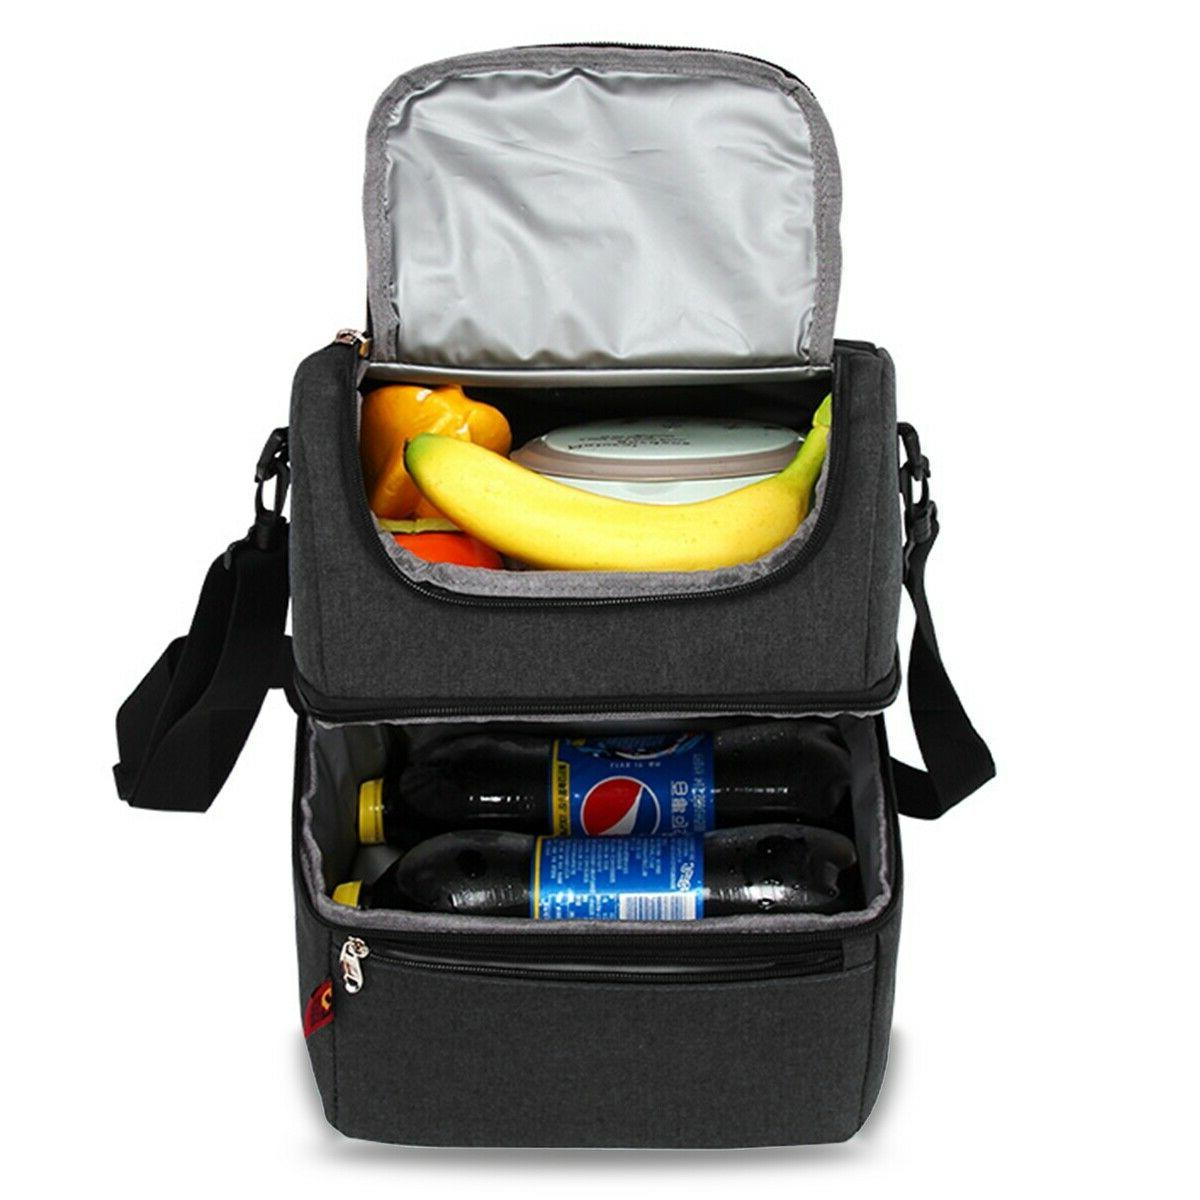 Adult Lunch Box Insulated Lunch Bag Large Cooler Tote Bag fo